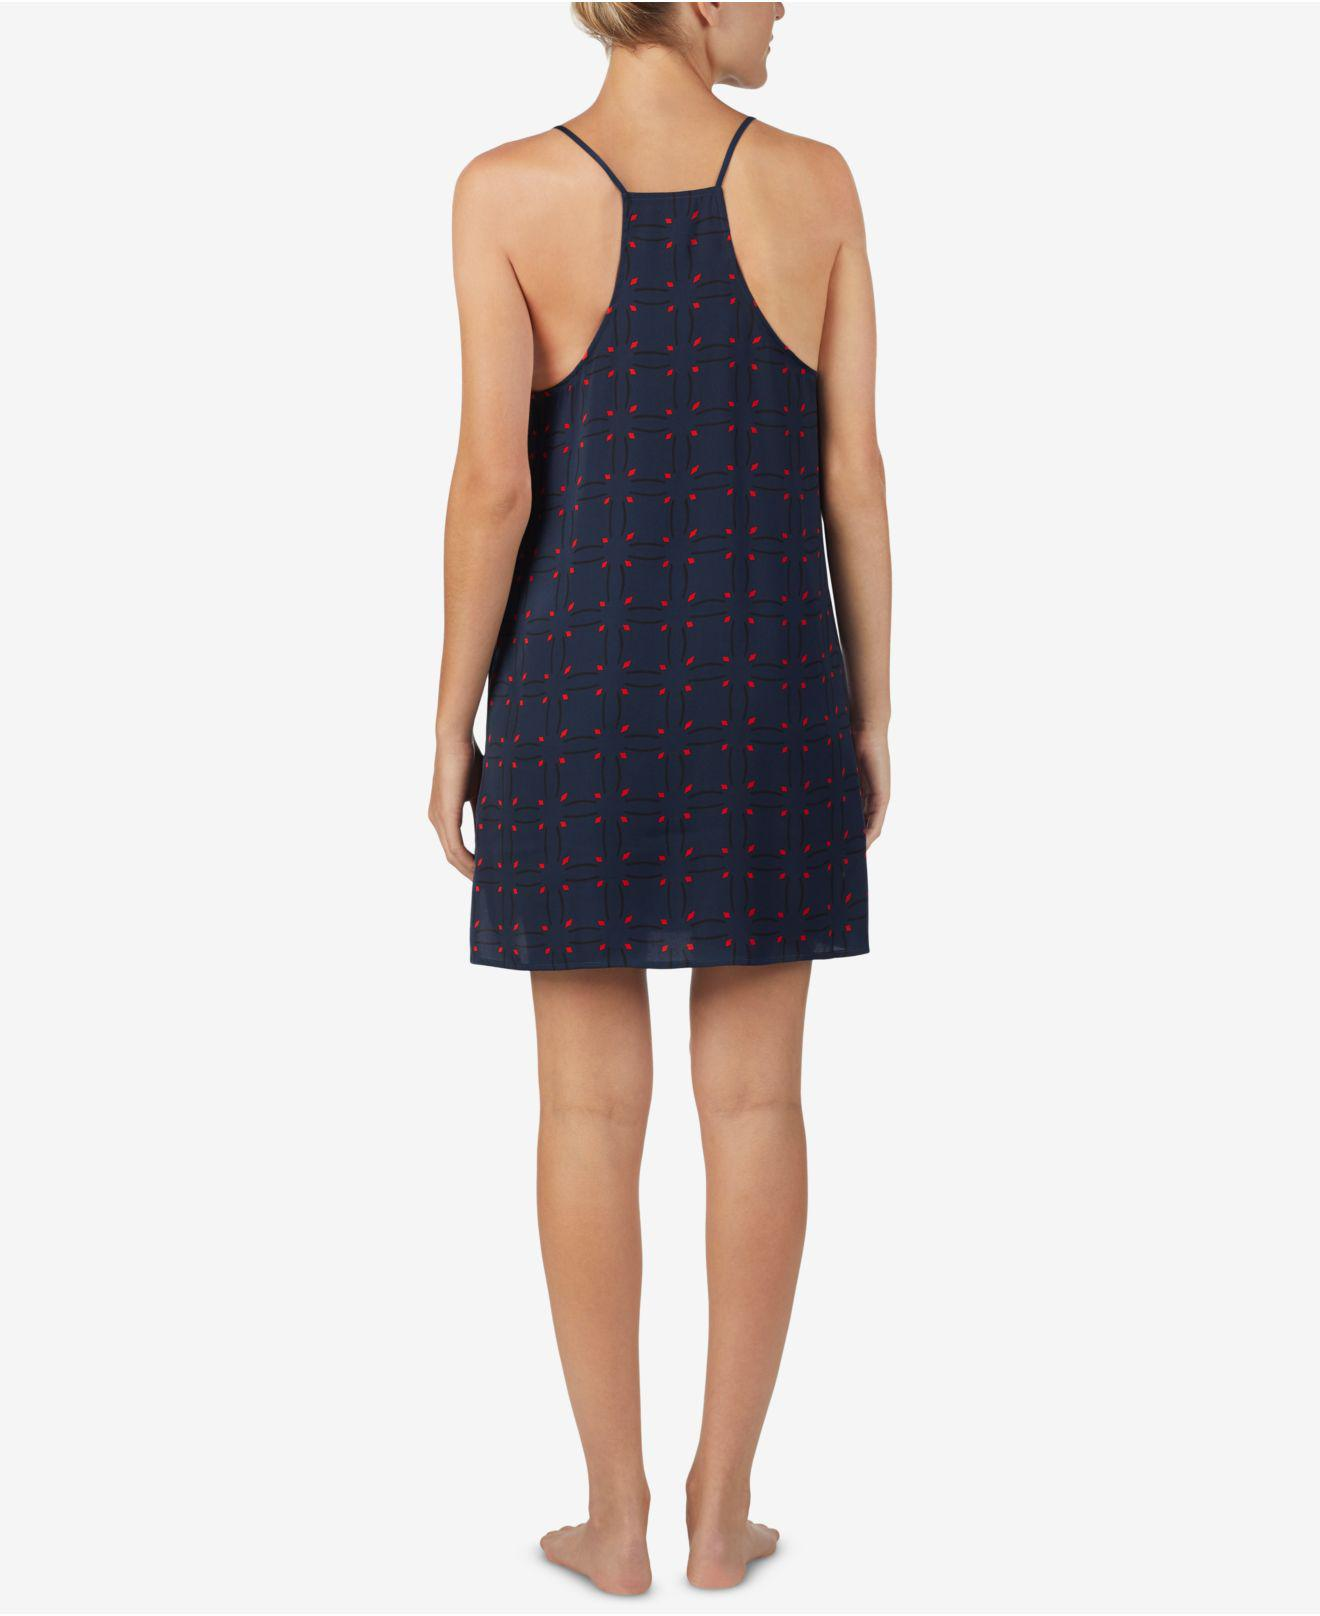 3d72c5b38e8f4 Lyst - Dkny Racerback Chemise in Blue